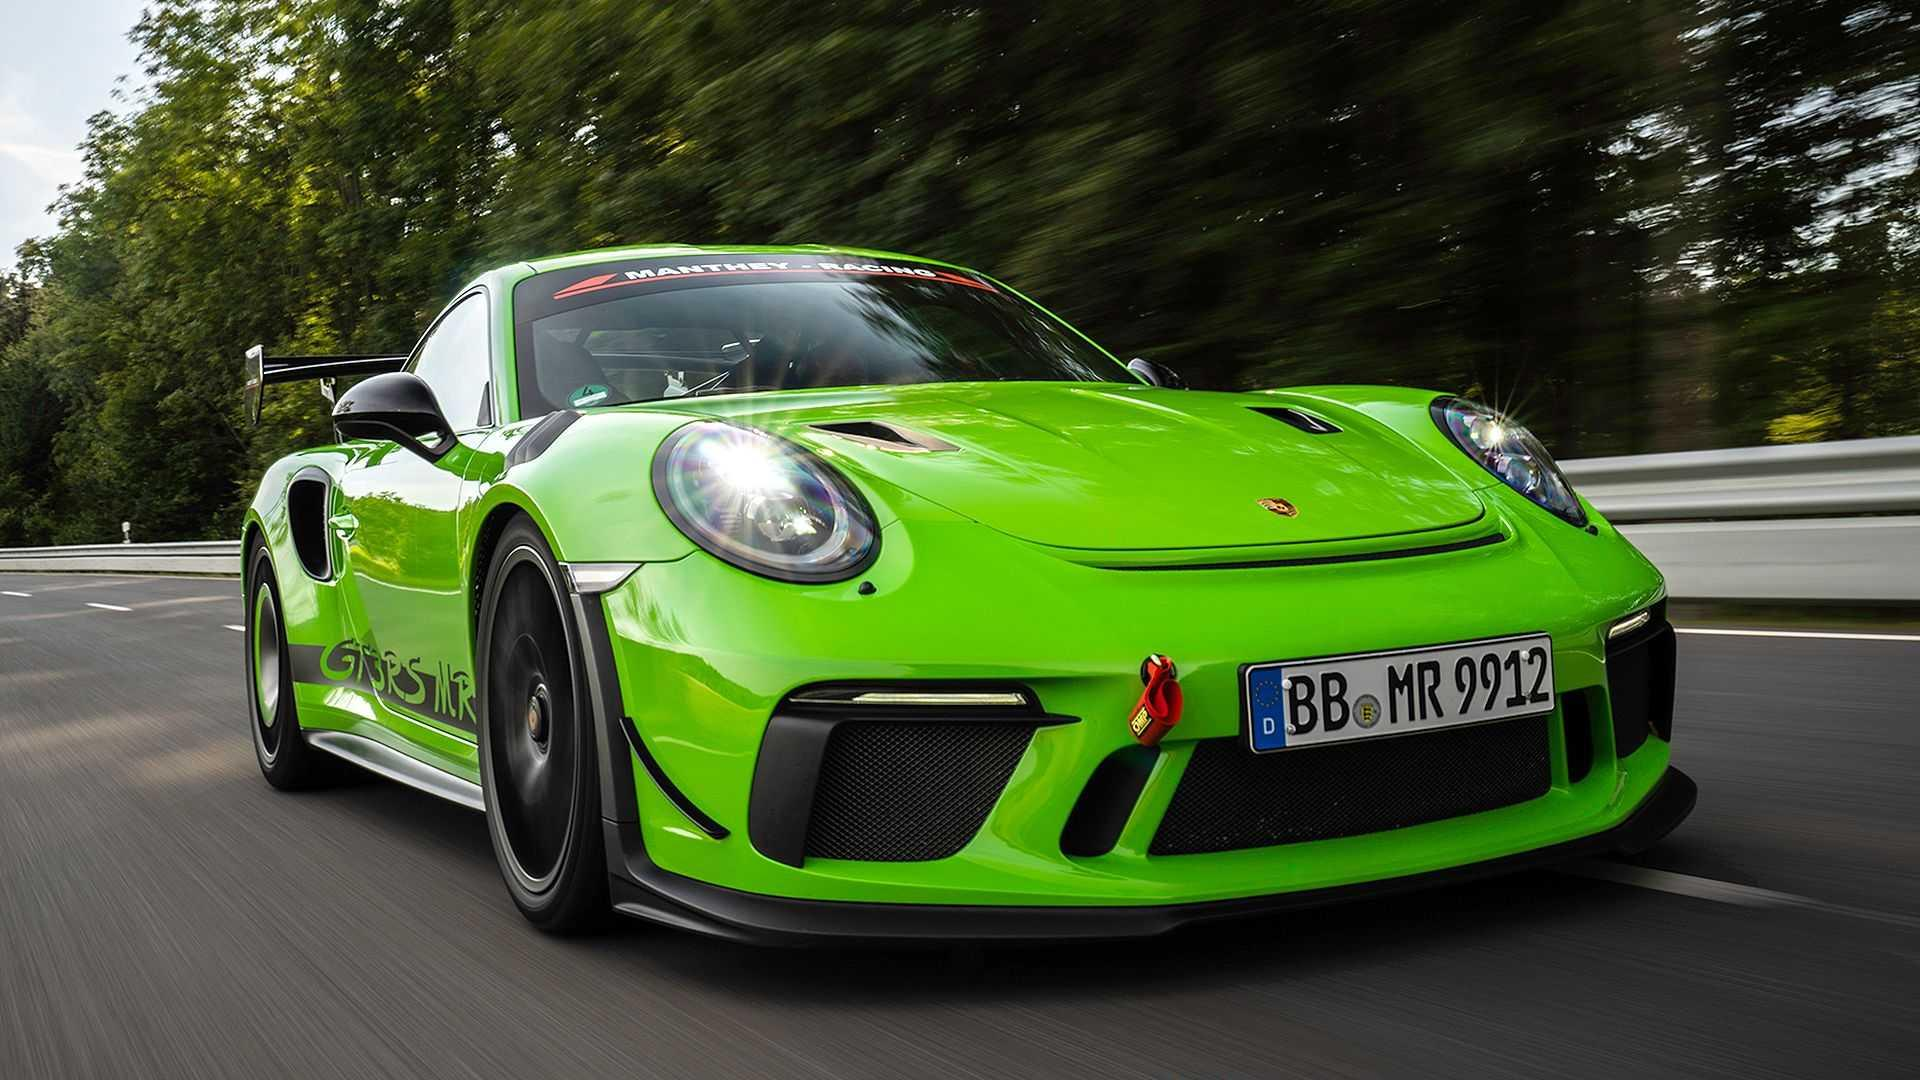 Porsche 911 Gt3 Rs Receives Manthey Racing Upgrades